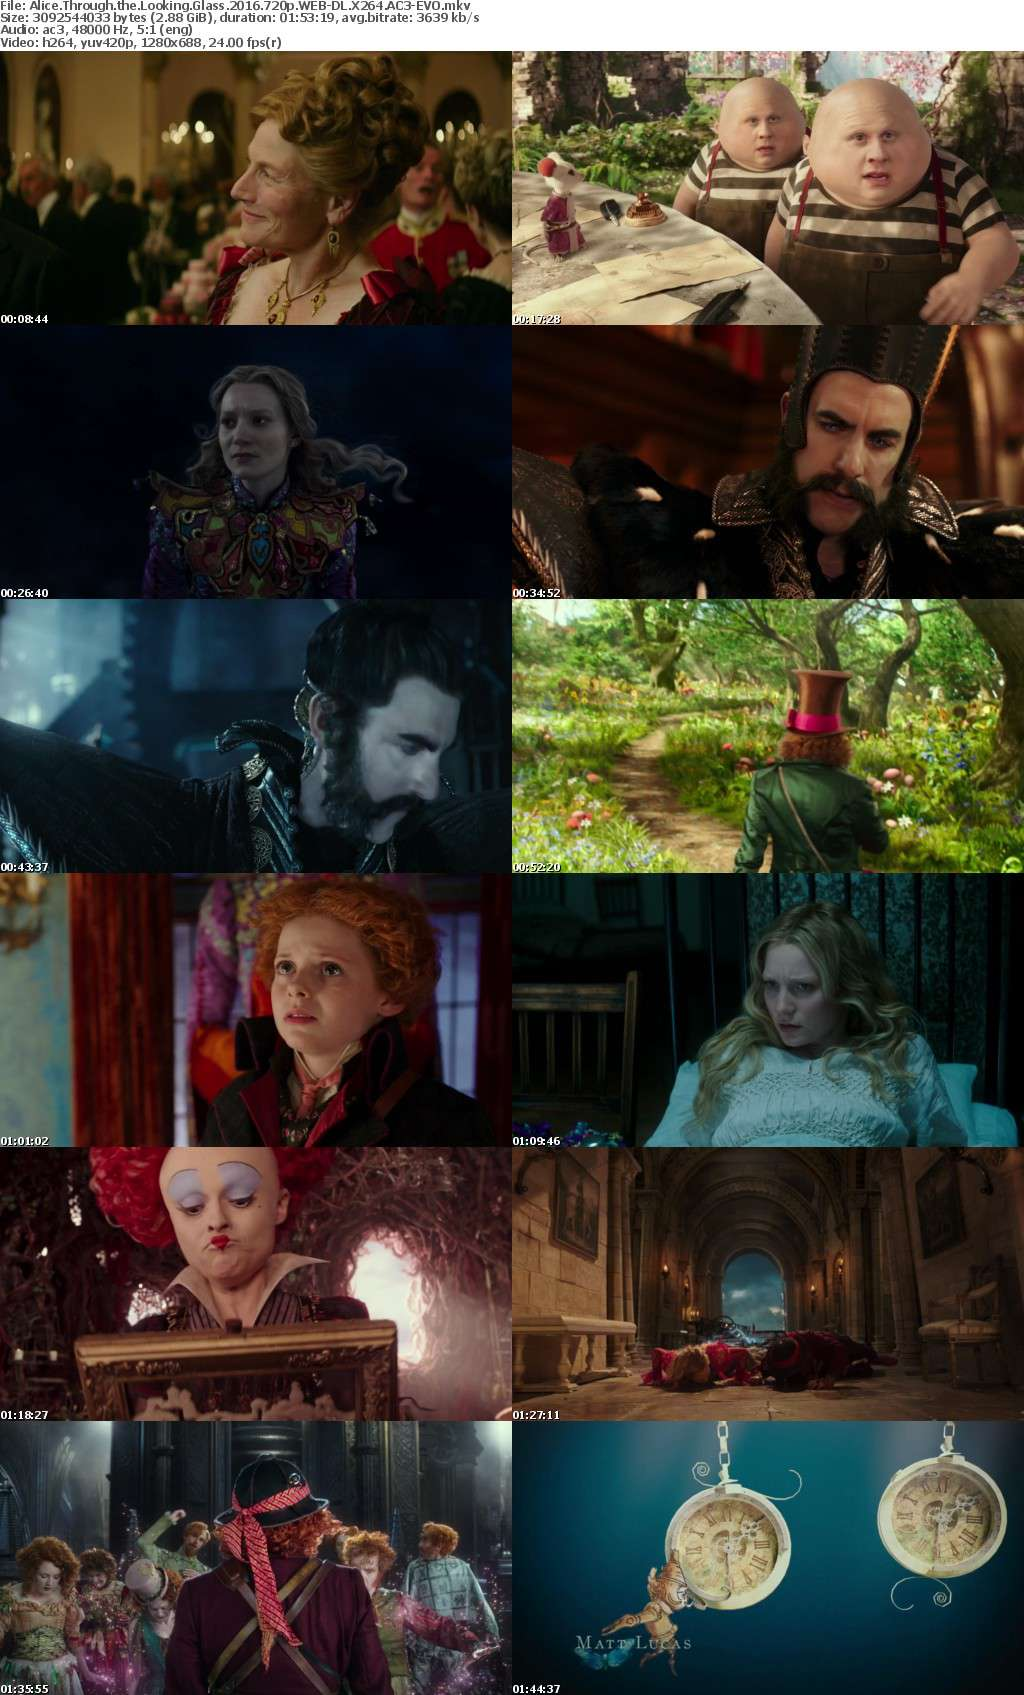 Alice Through the Looking Glass 2016 720p WEB-DL X264 AC3-EVO